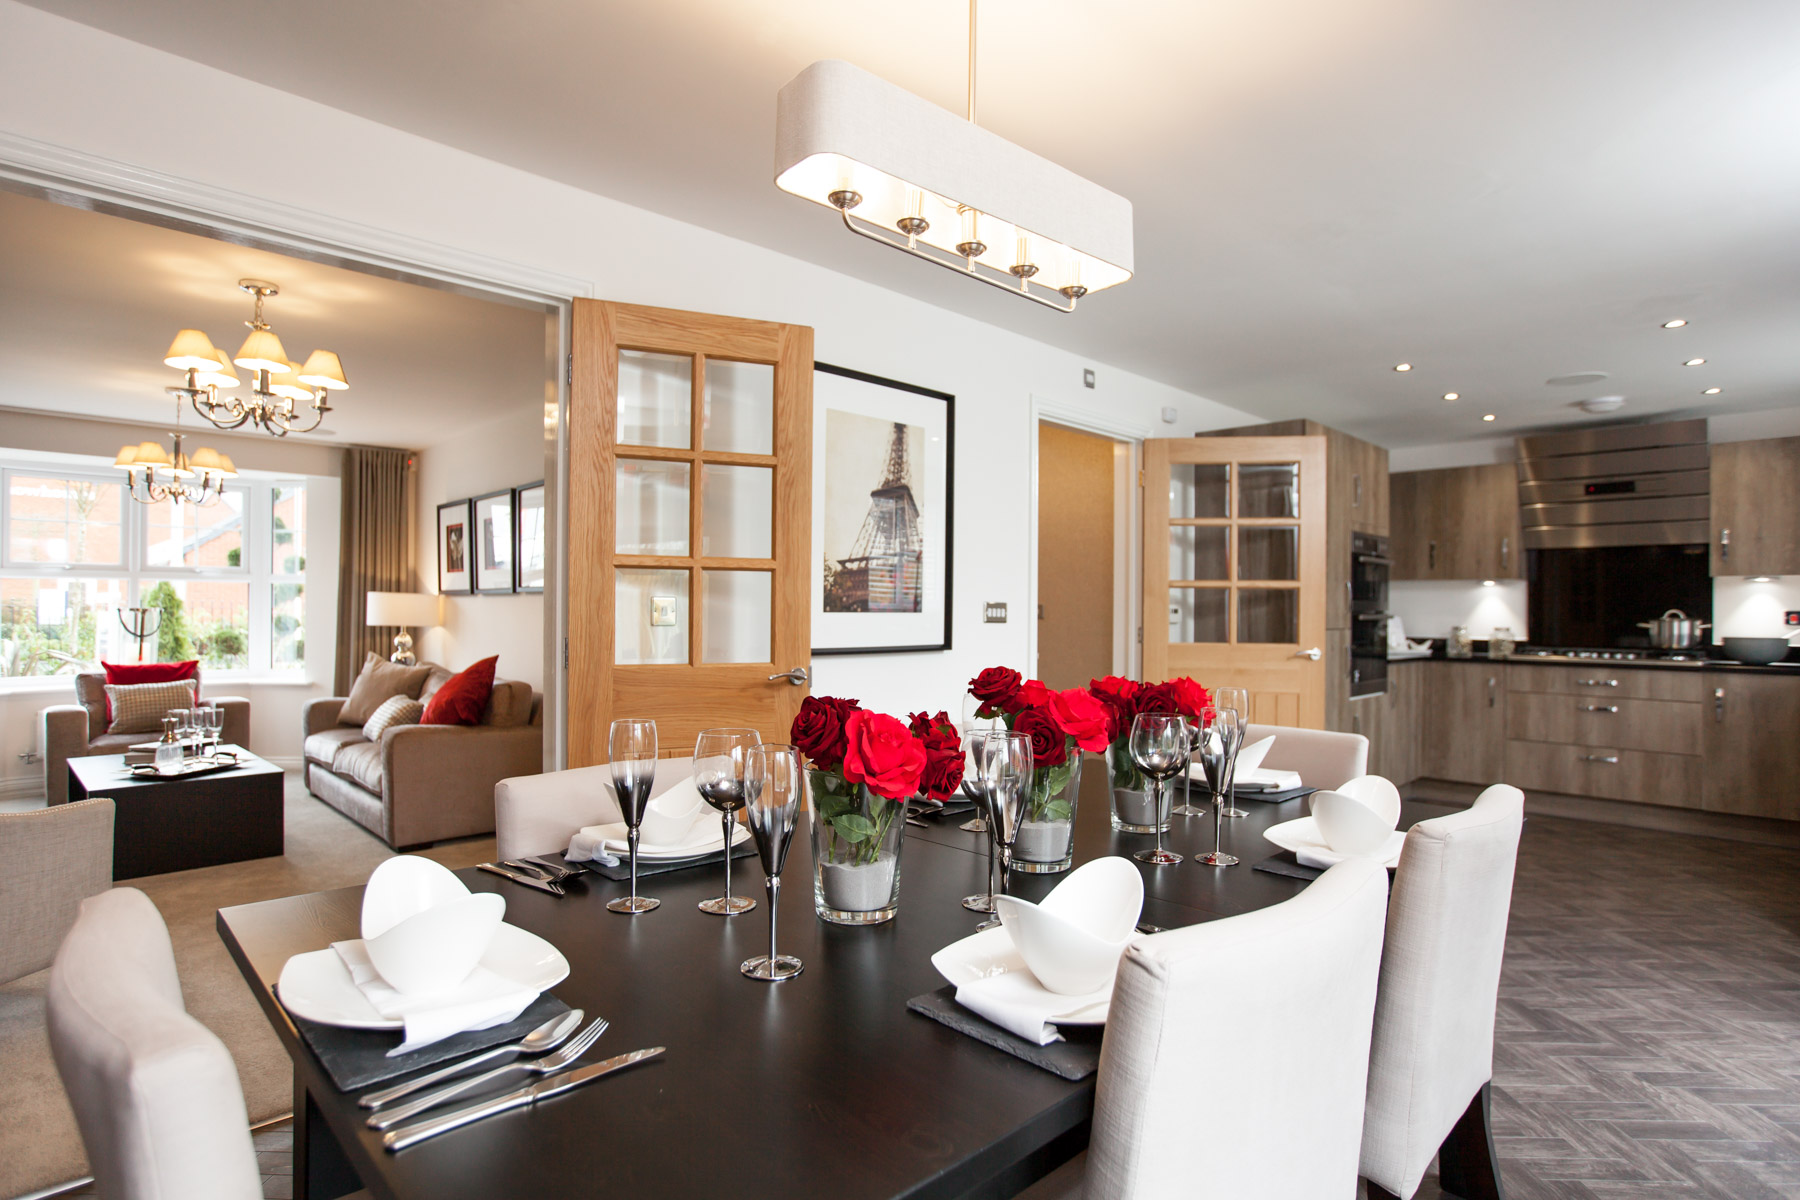 013_SG_Downham_Kitchen_Diner